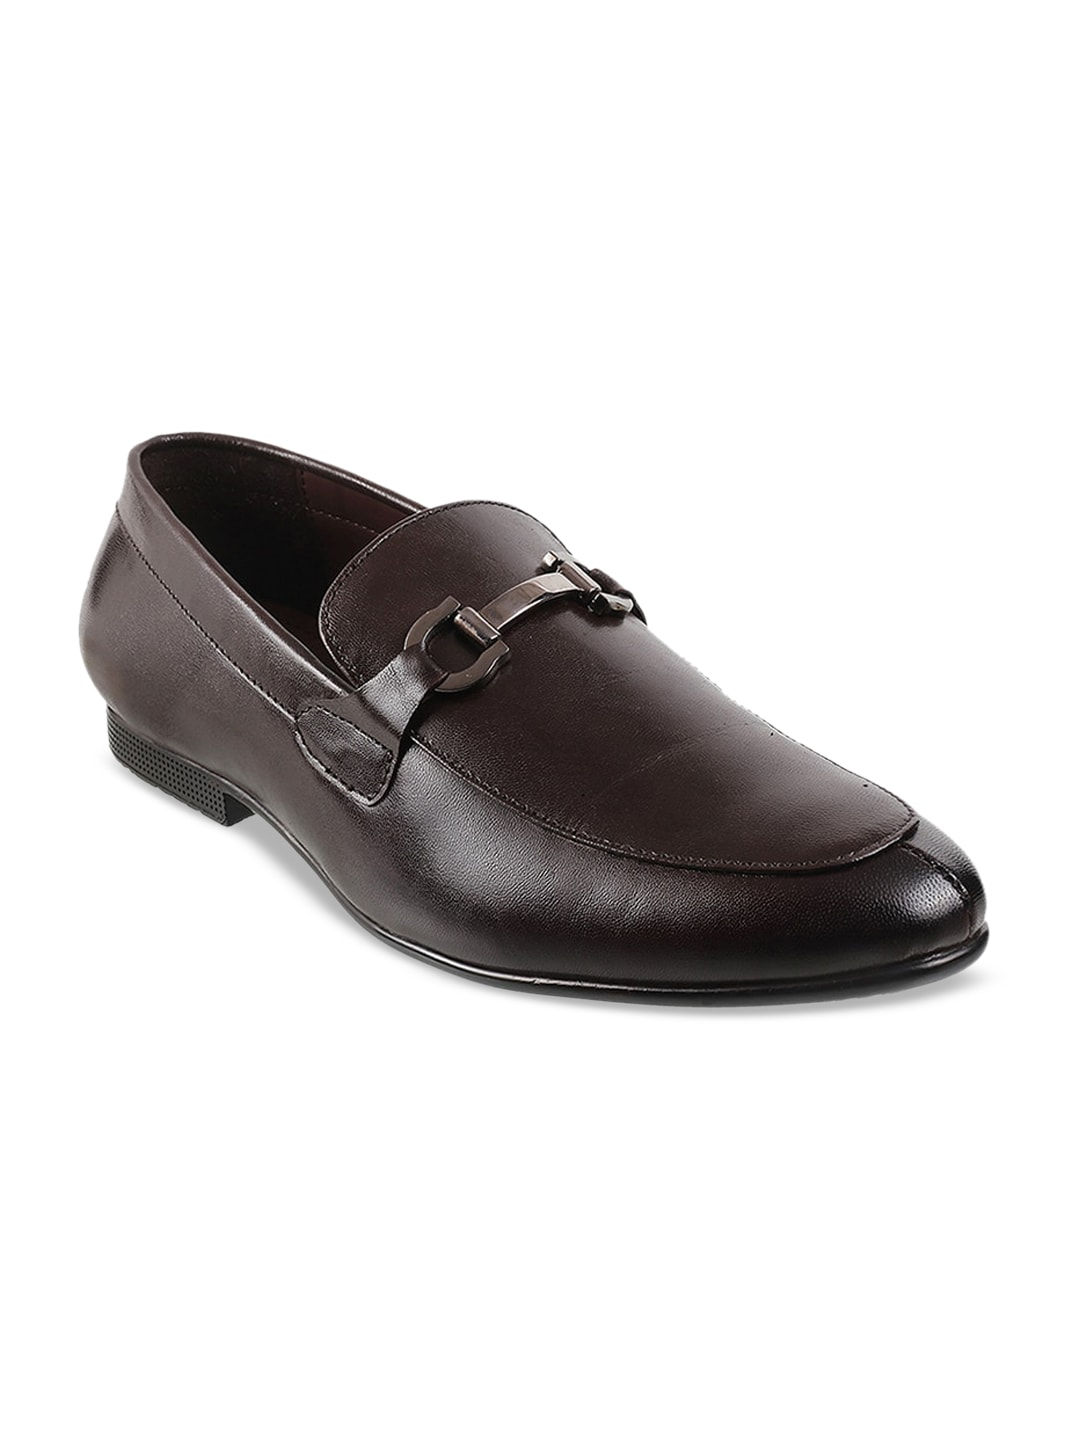 Mochi Men Brown Solid Leather Formal Loafers